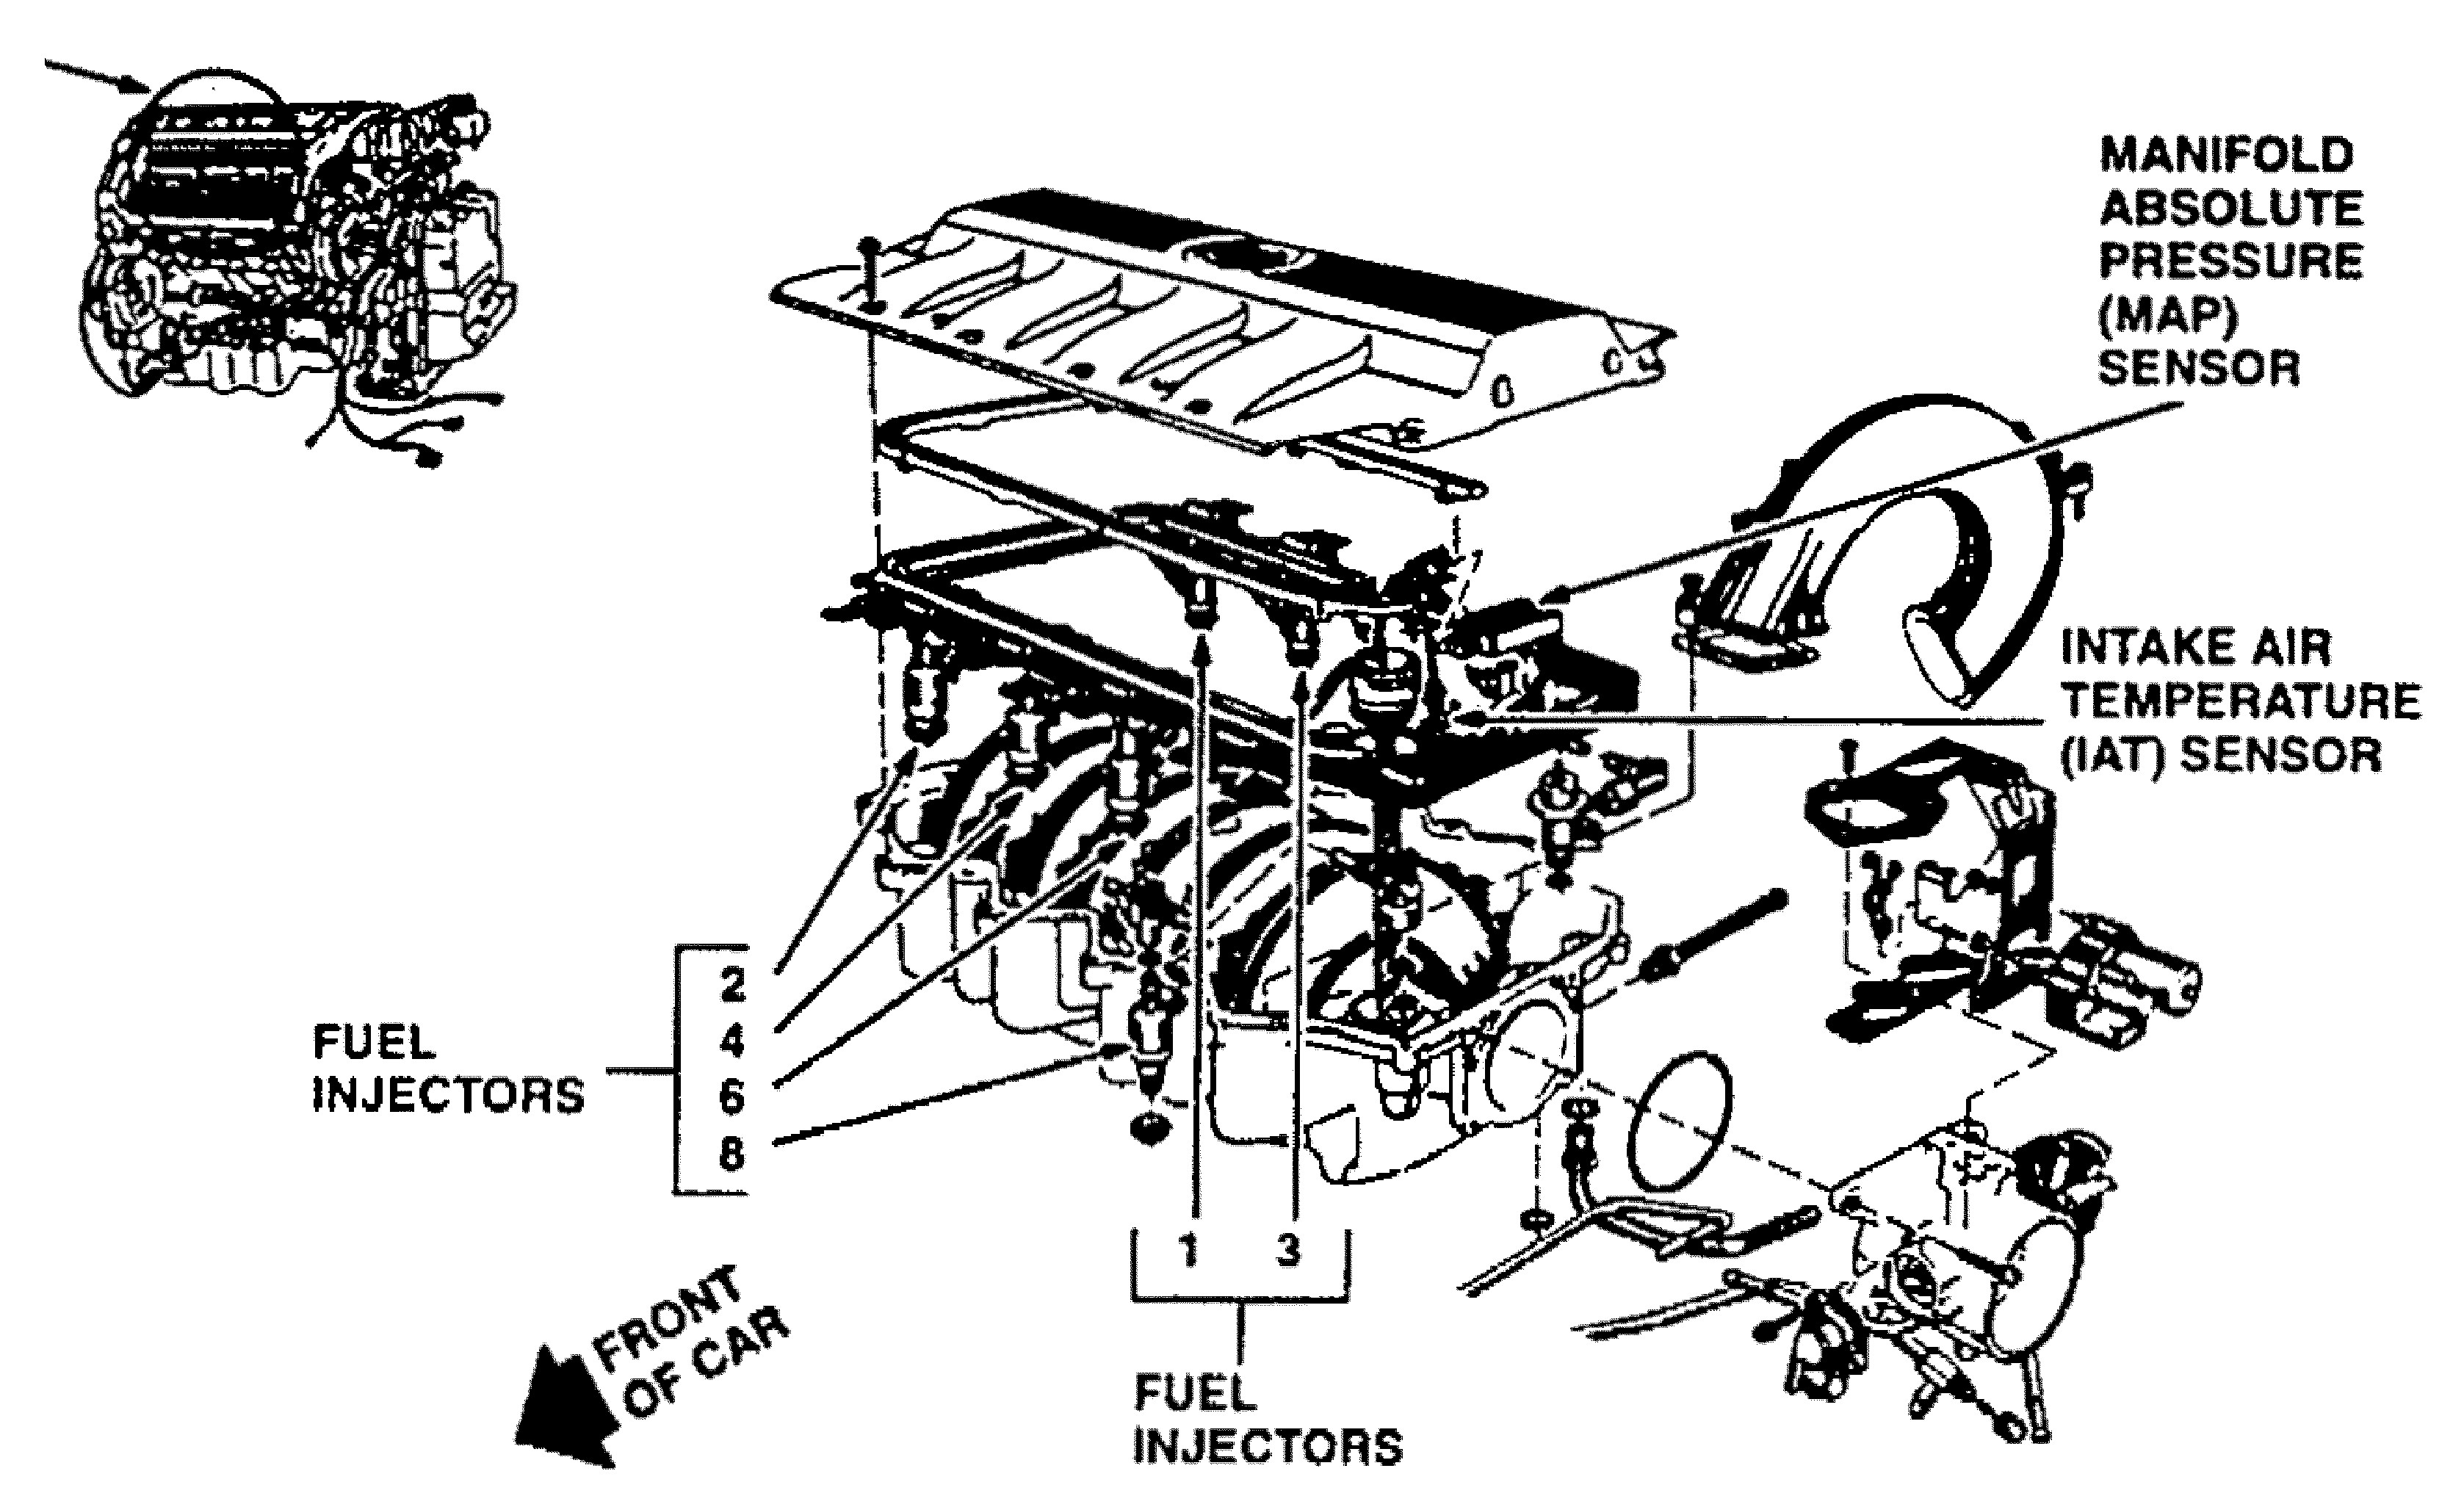 4 6 northstar engine diagram a1996 cadillac deville with a north rh detoxicrecenze com northstar engine diagram 1997 Cadillac DeVille Engine Diagram